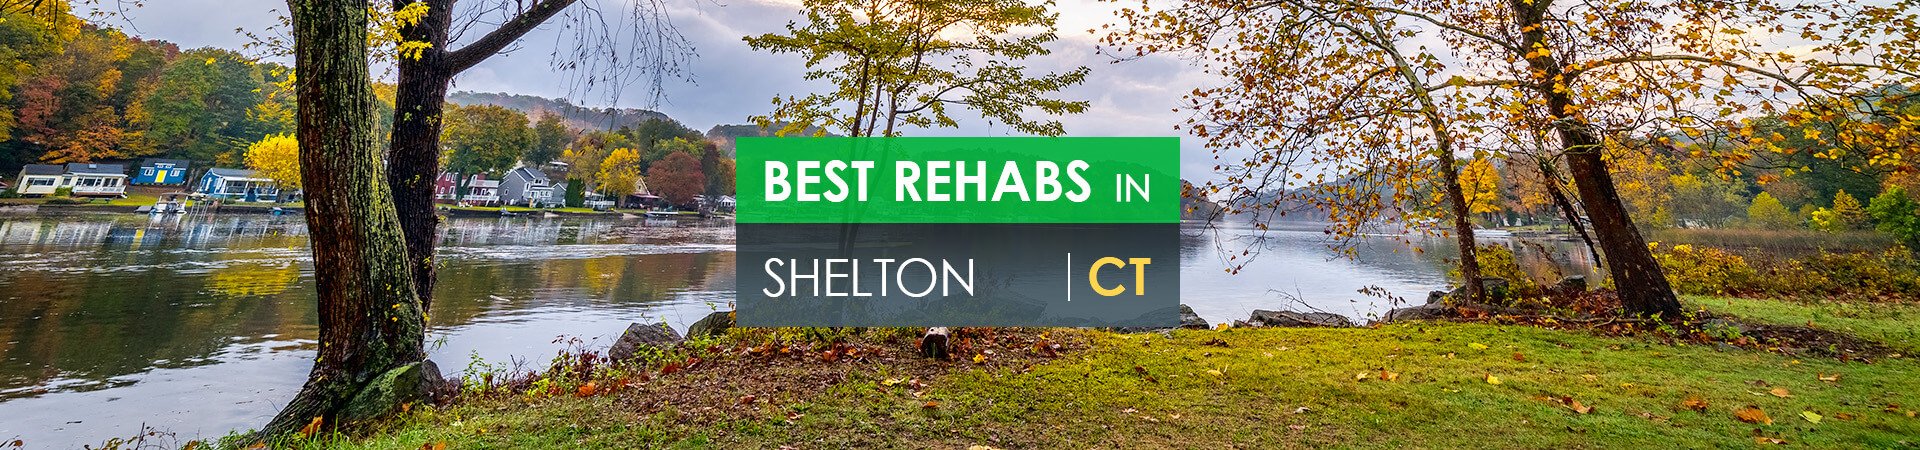 Best rehabs in Shelton, CT